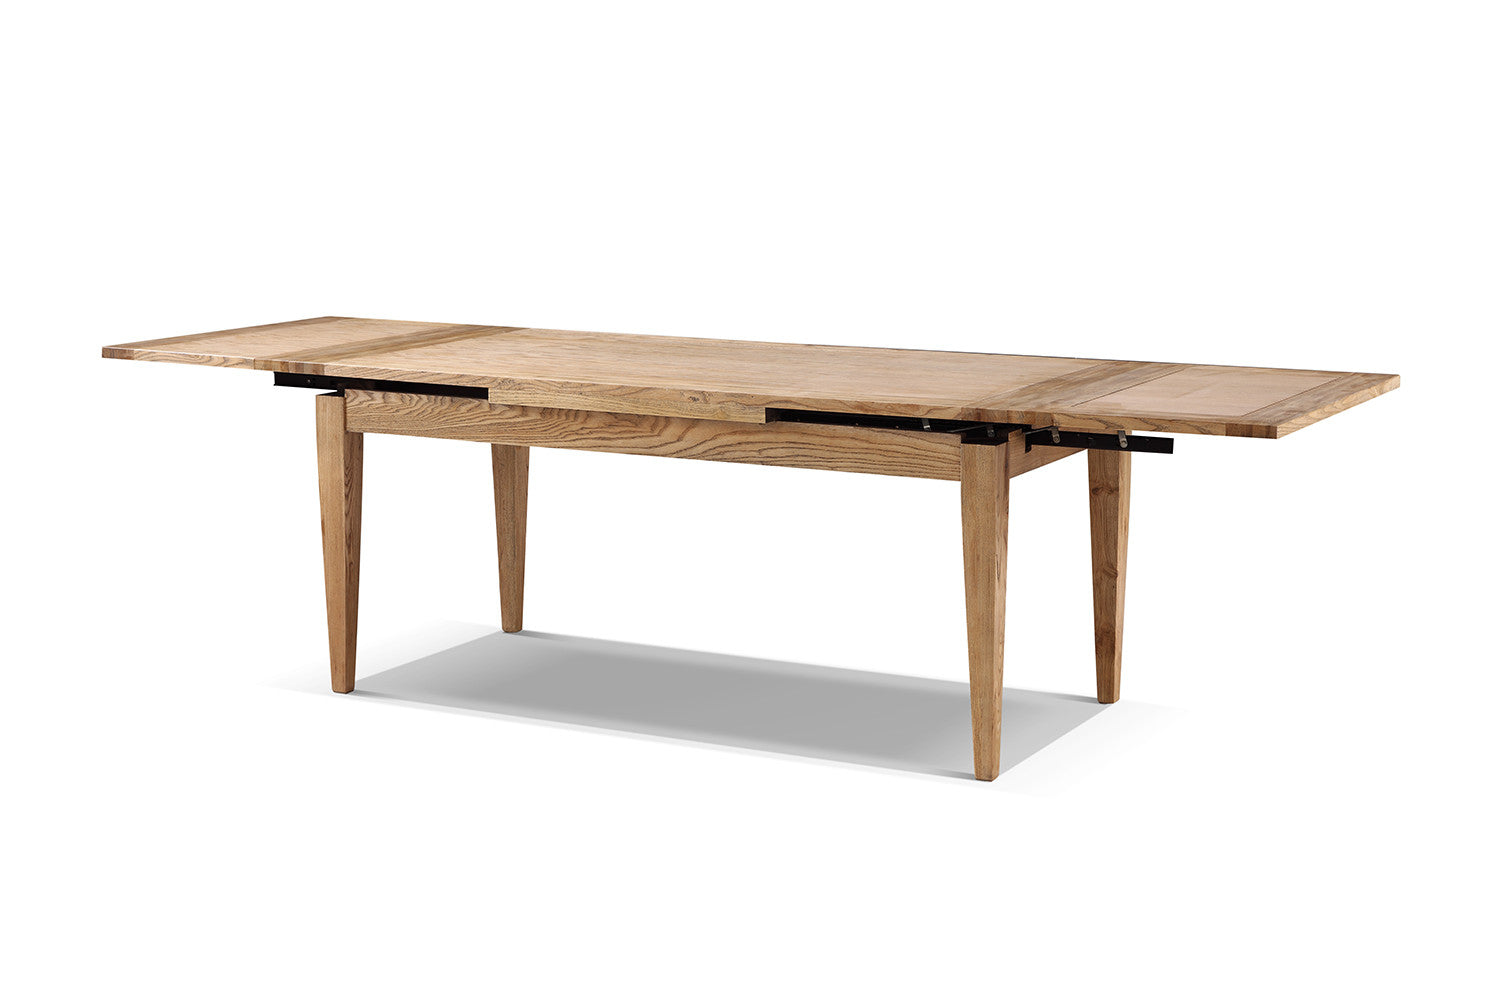 Table manger cottage en bois extensible rose moore for Table de salle a manger extensible en bois